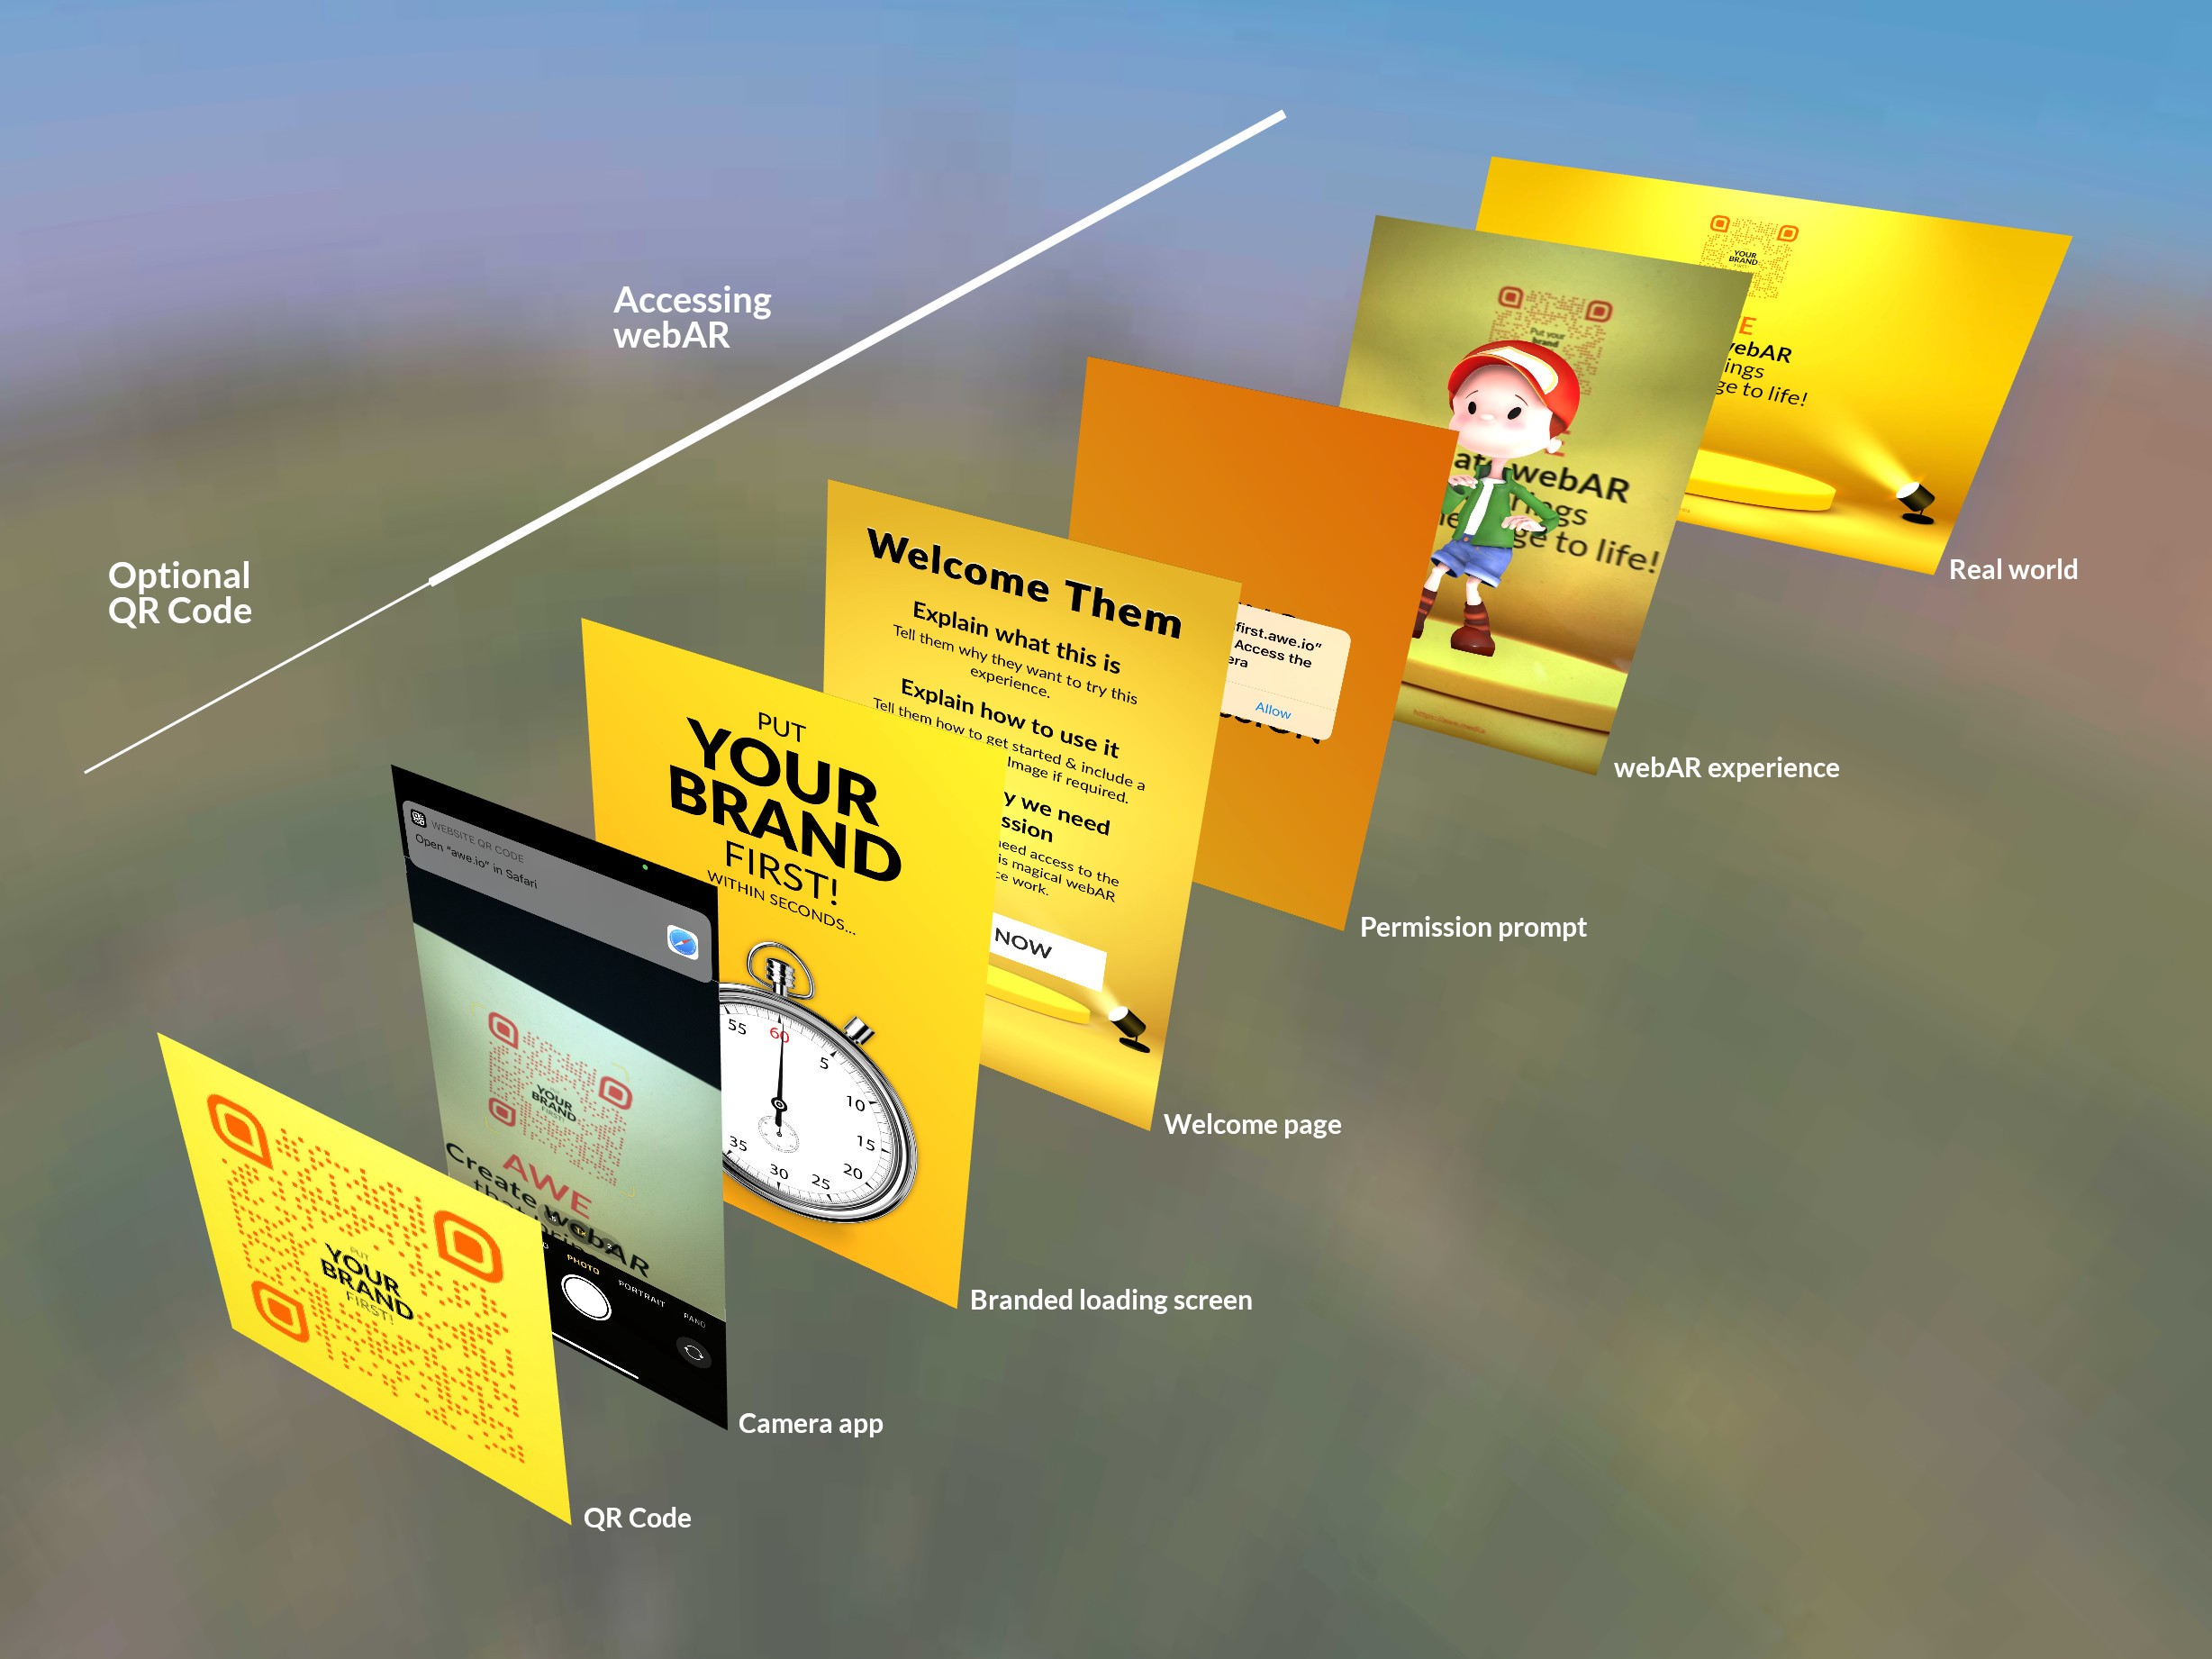 Steps to webAR — QR code, Camera app, Brandeoading screen, Welcome page, Permission prompt, webAR experience & the Real world